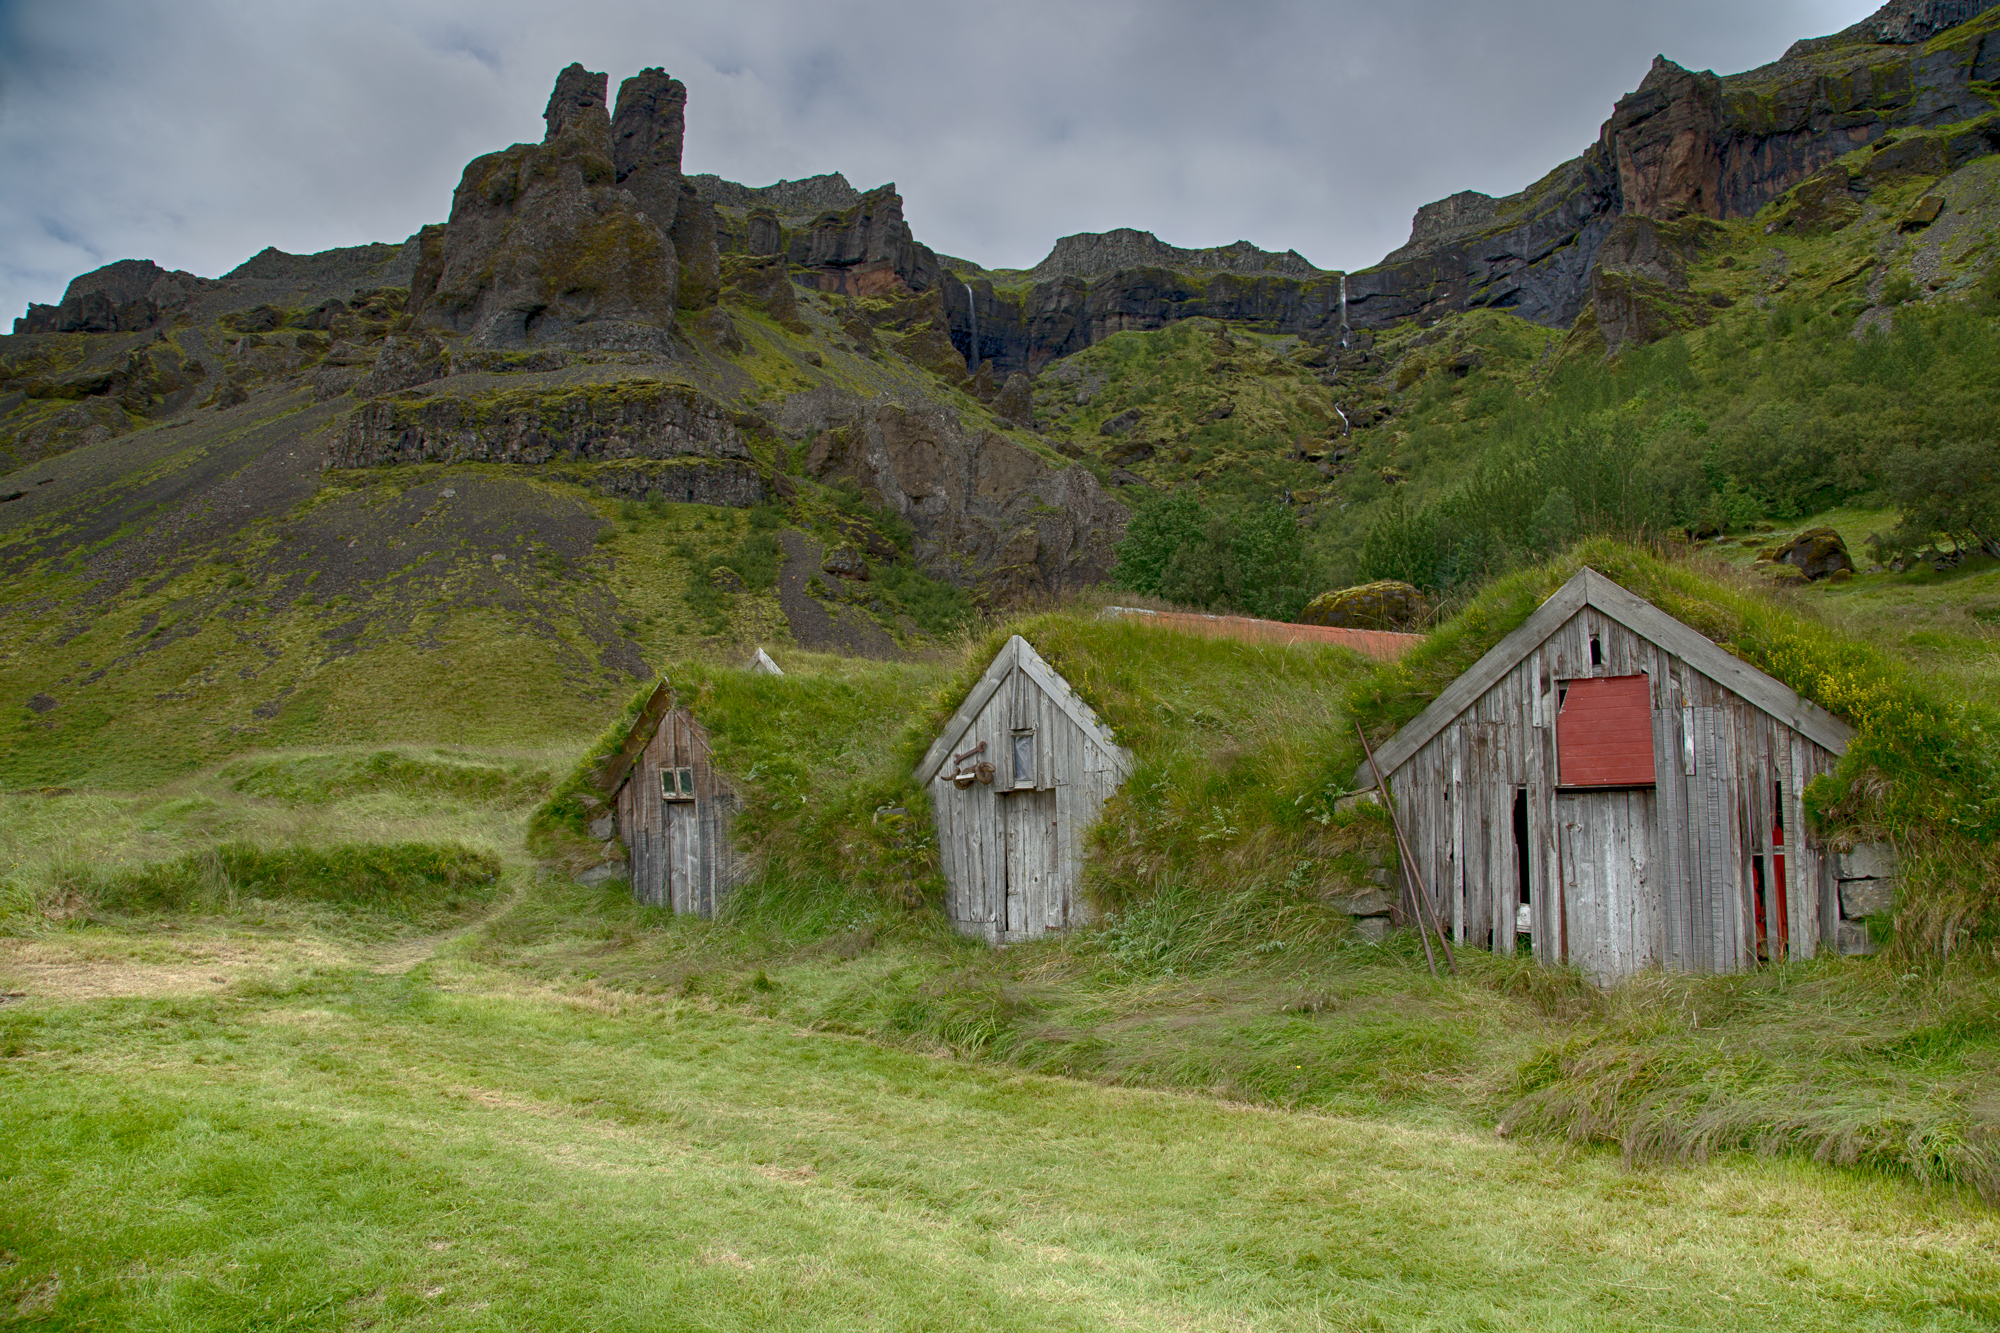 House with grass roof, Iceland